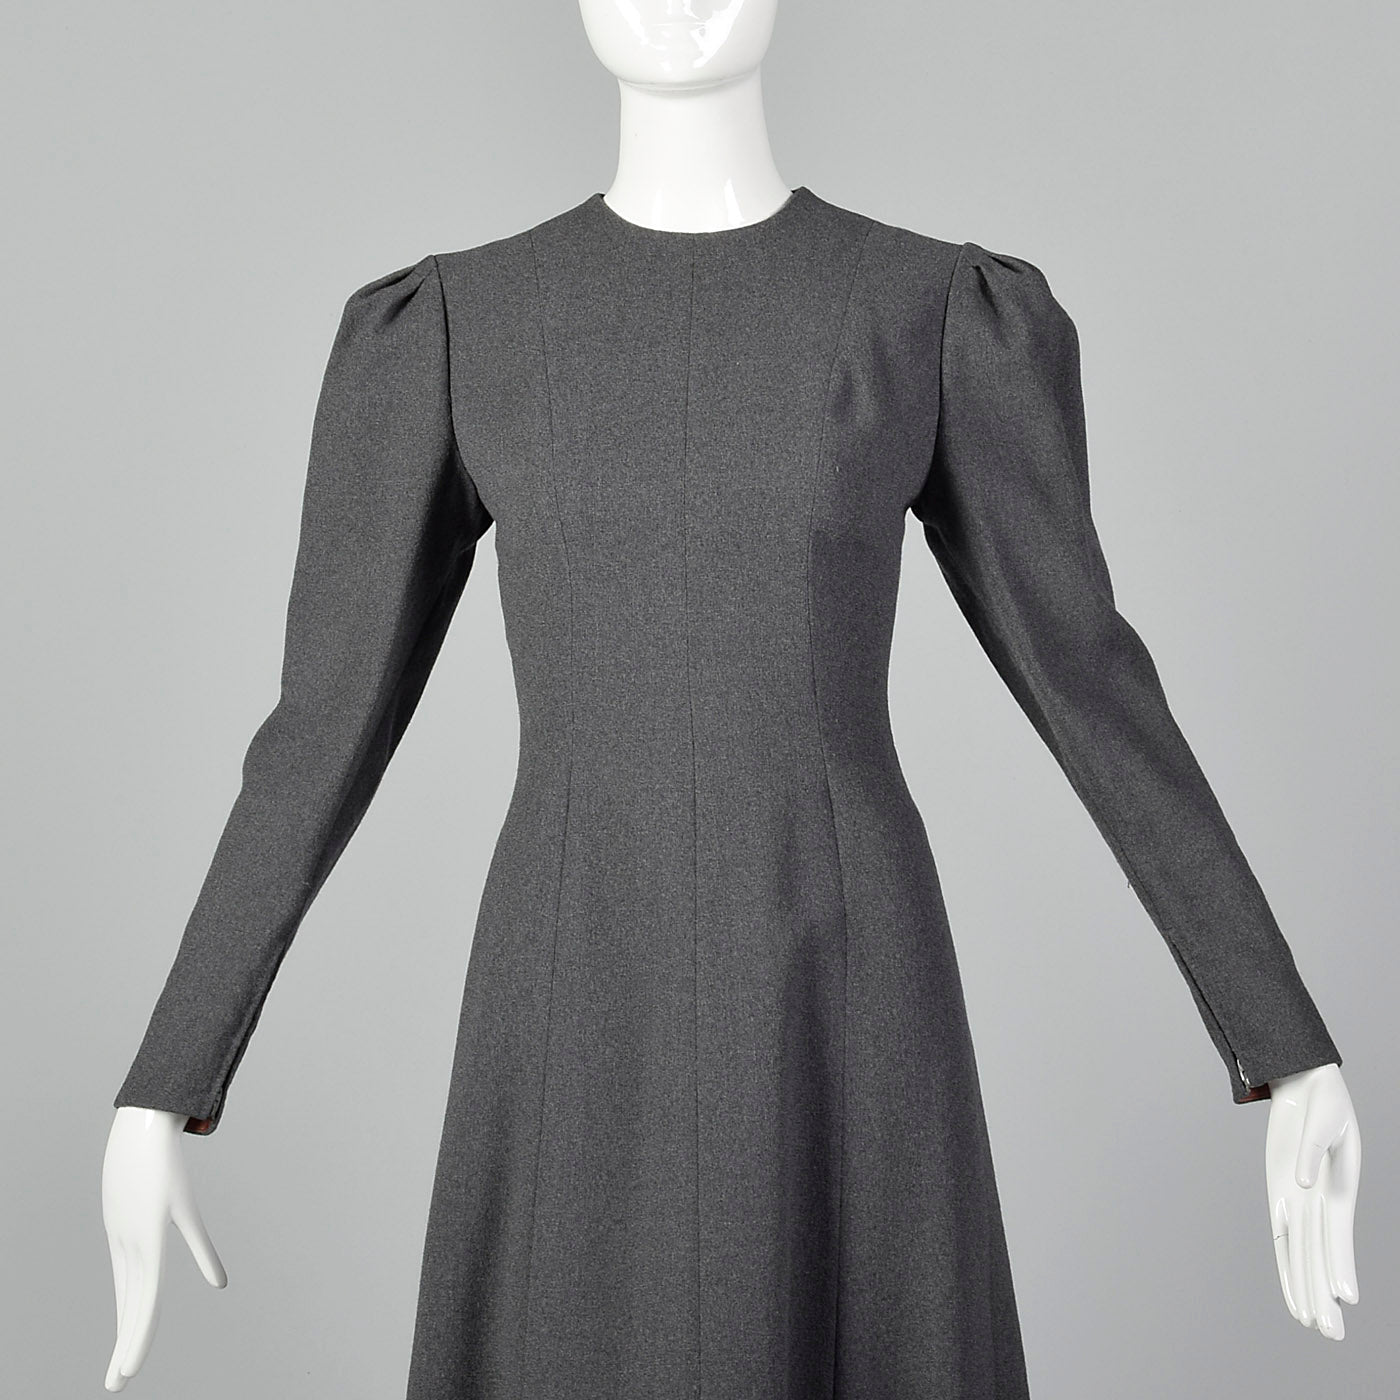 1970s Pauline Trigere Gray Wool Crepe Dress